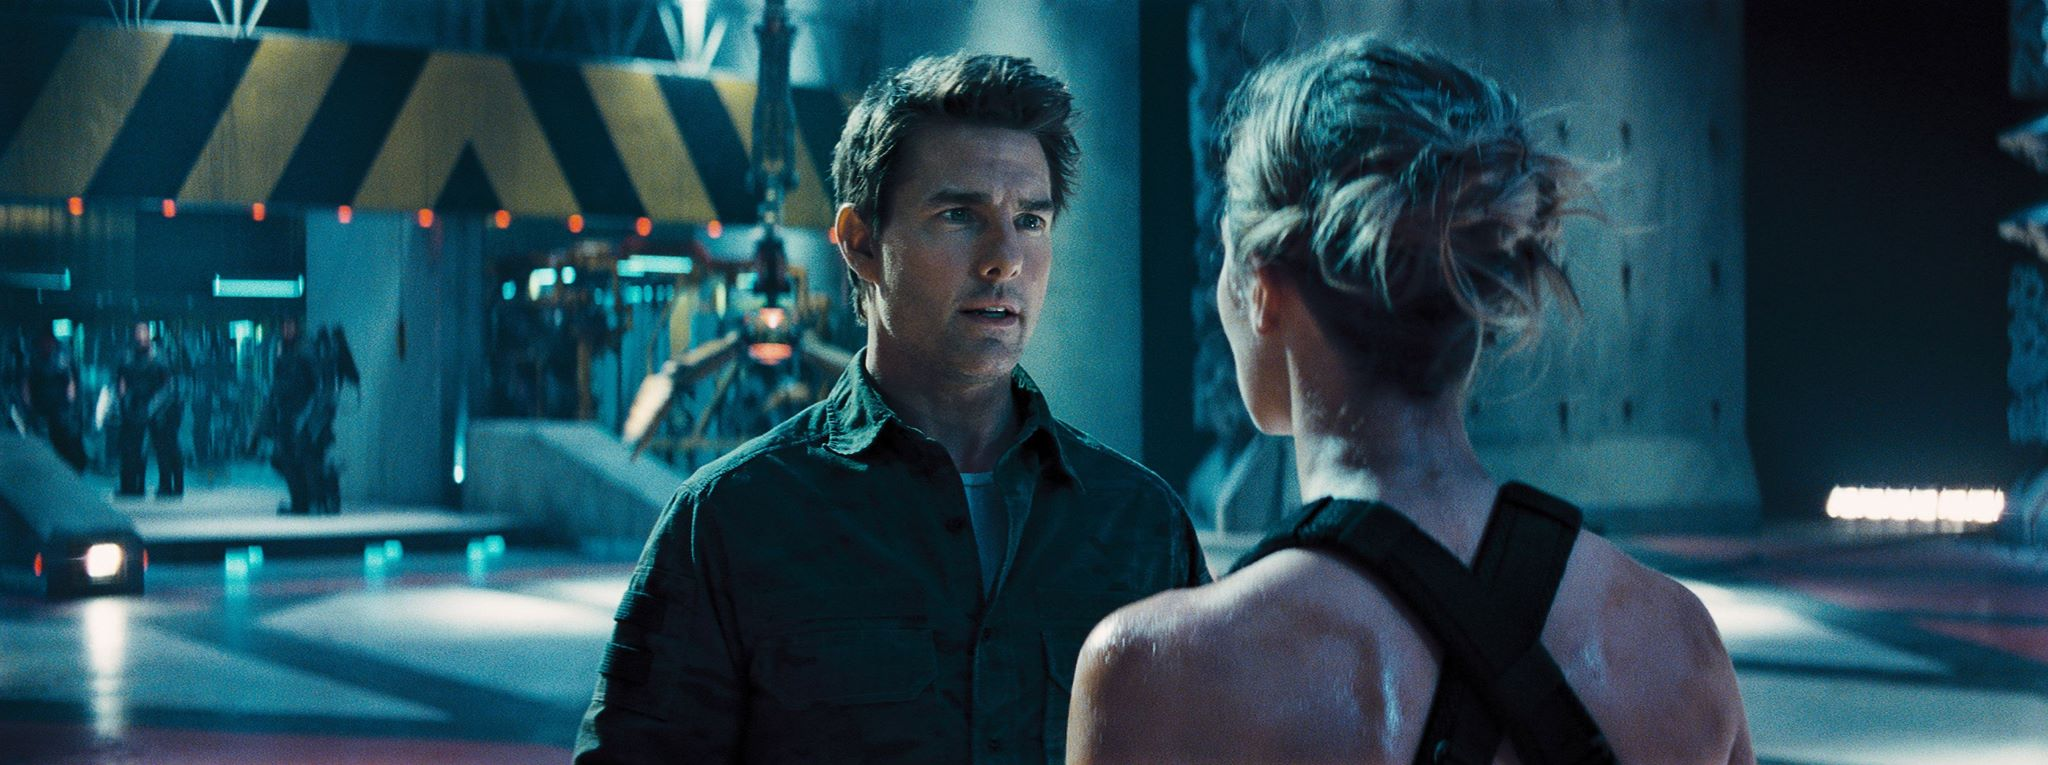 Tom Cruise Returning for 'Edge of Tomorrow' Sequel